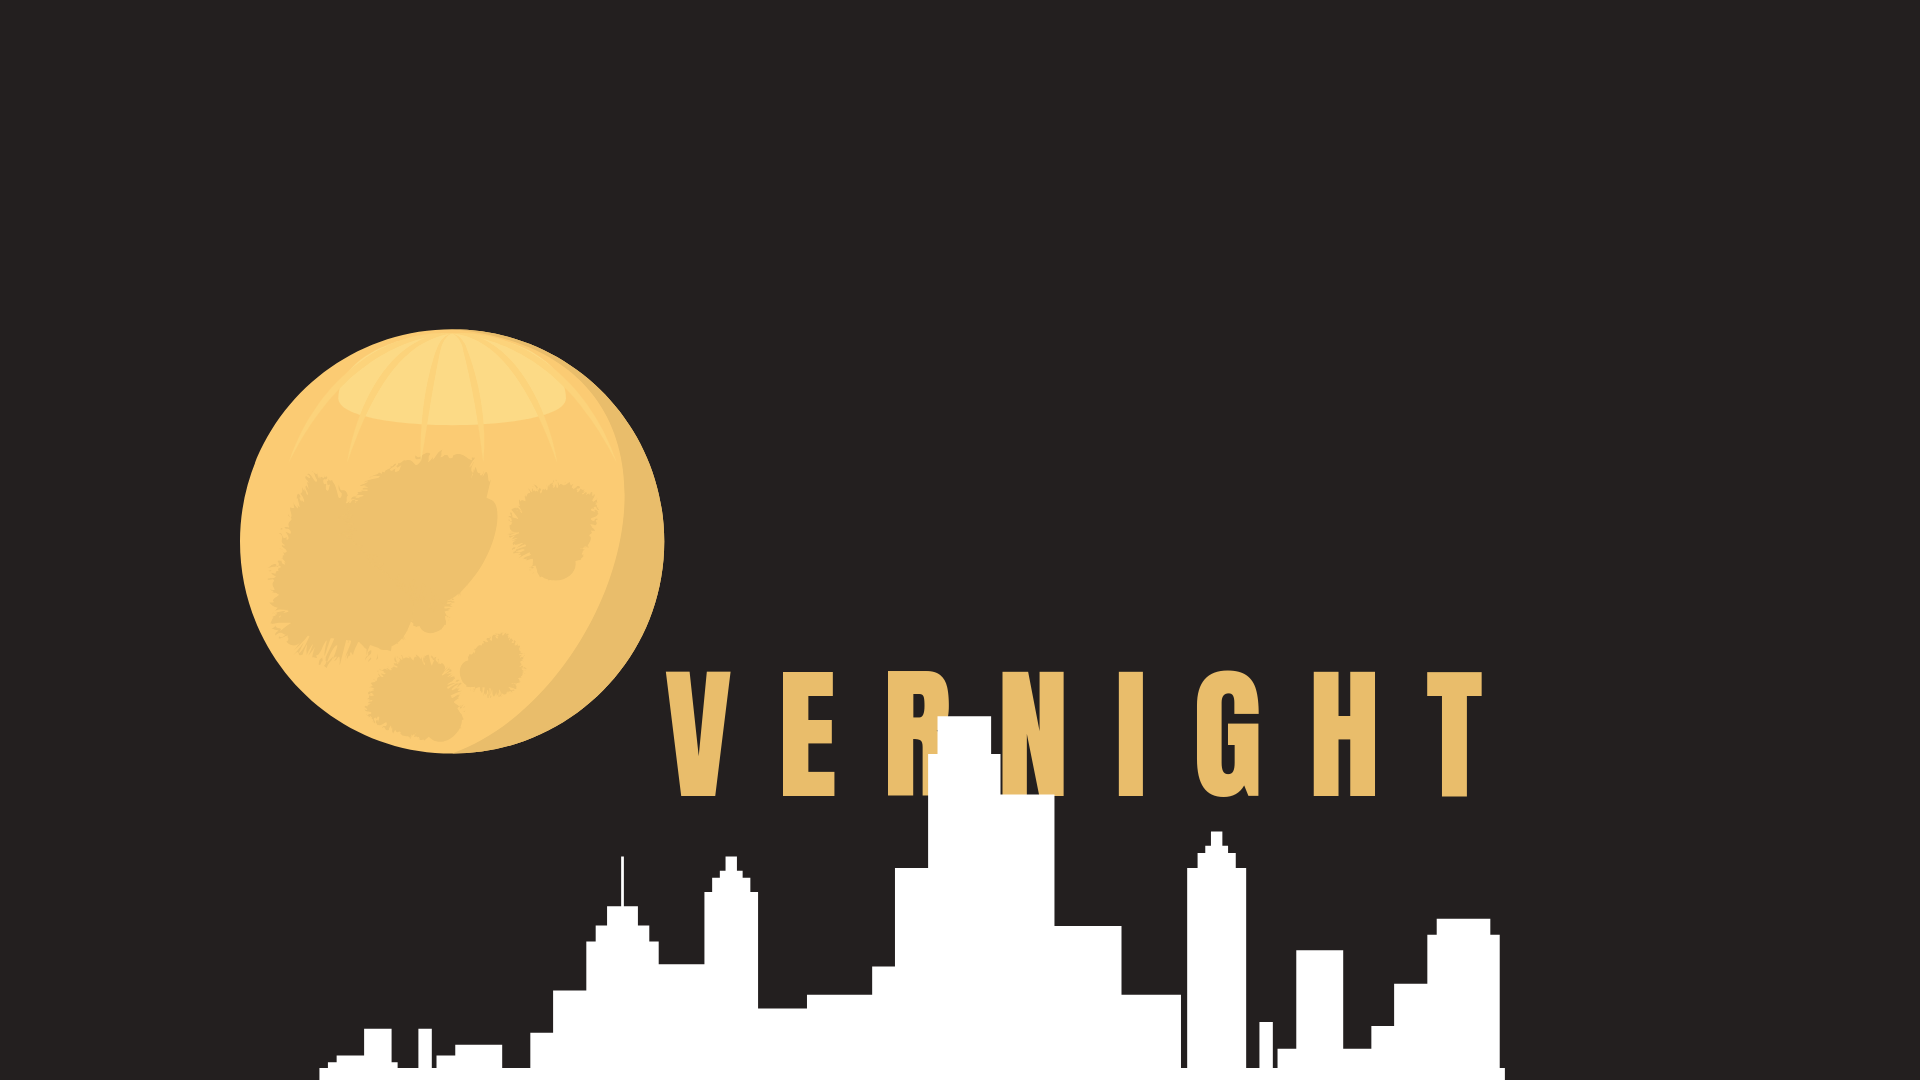 Copy of Copy of VERNIGHT (1).png